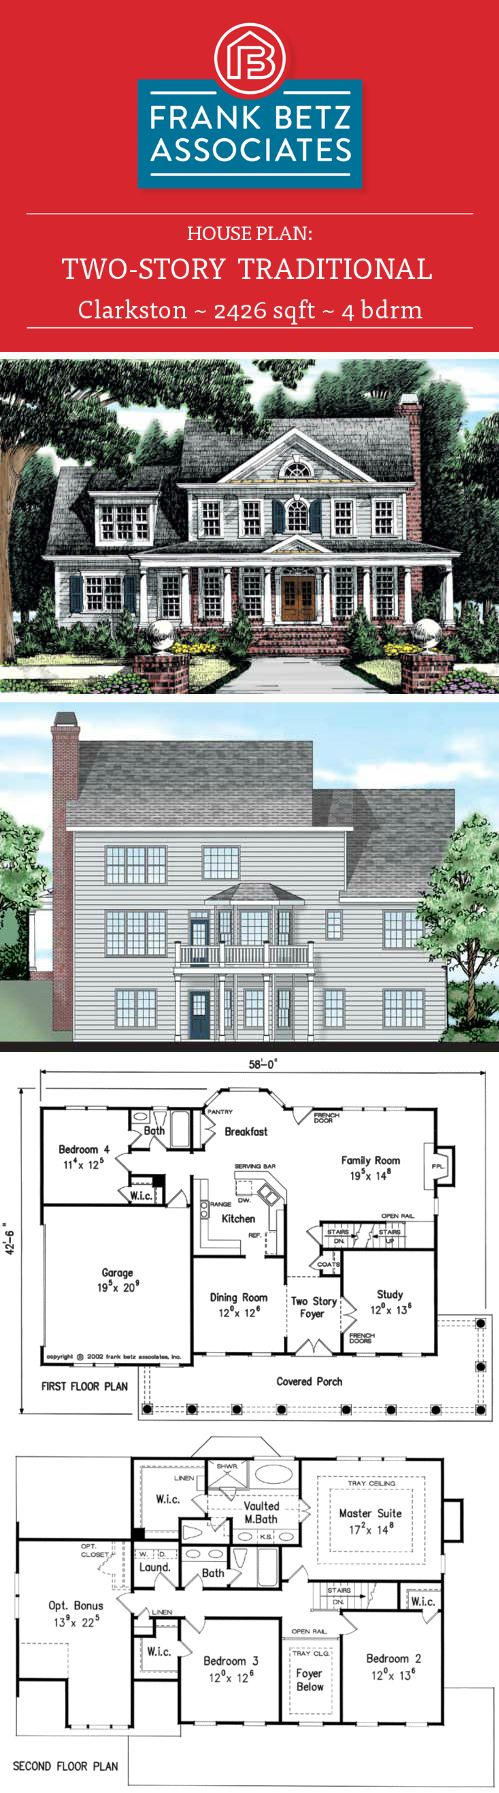 top 25 best affordable house plans ideas on pinterest house clarkston 2426 sqft 4 bdrm traditional house plan design by frank betz associates affordable